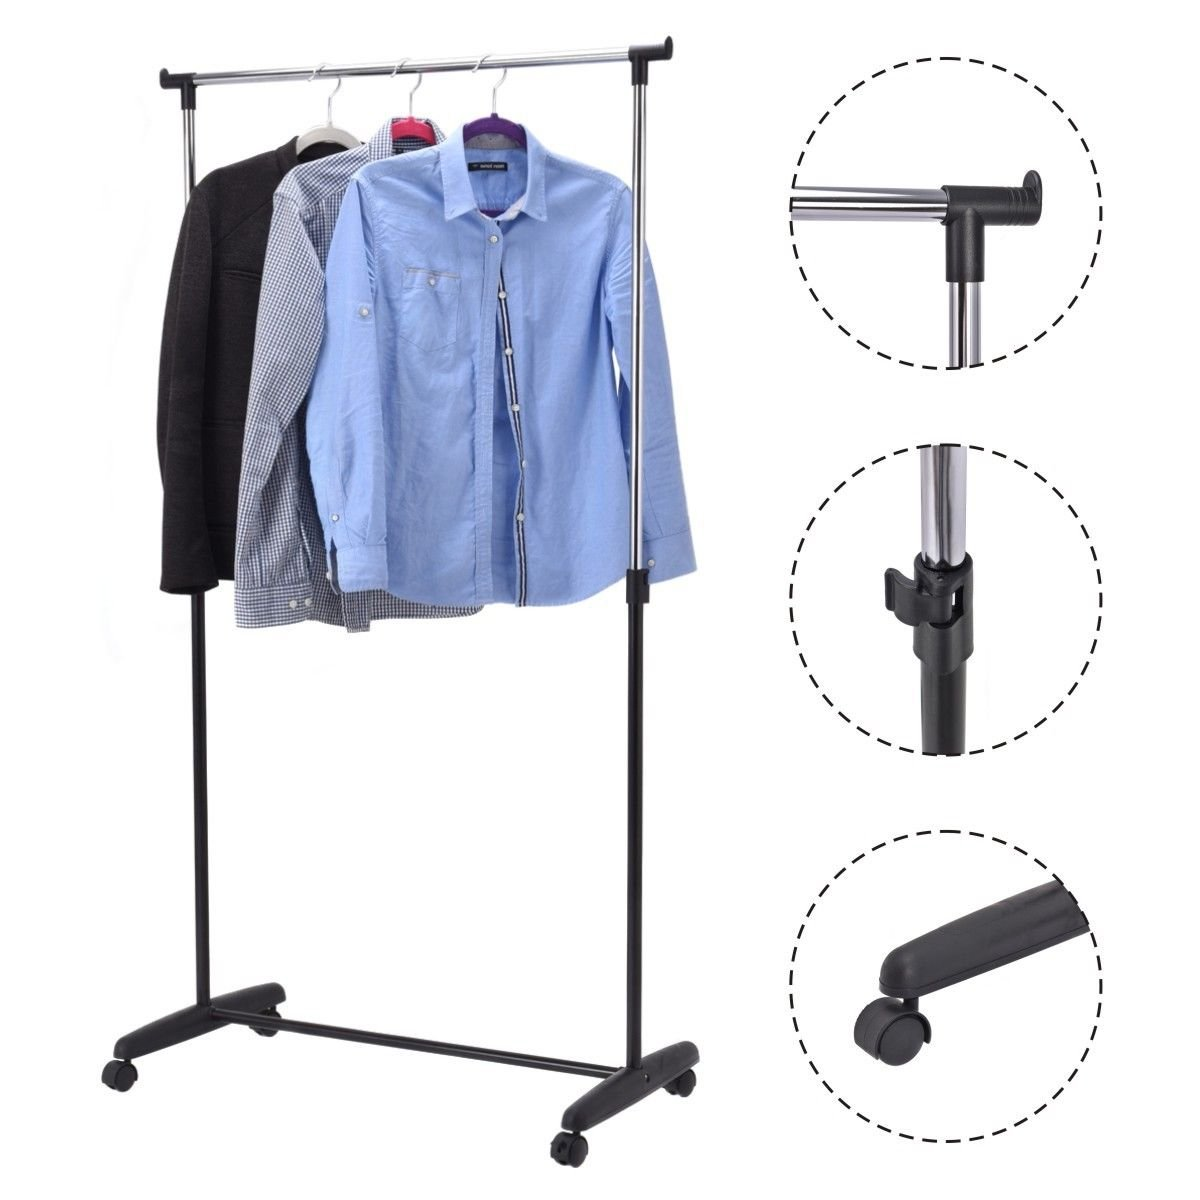 Safstar Adjustable Single Rod Garment Rack Rolling Hanging Rail Clothes Hanger Stand with Casters